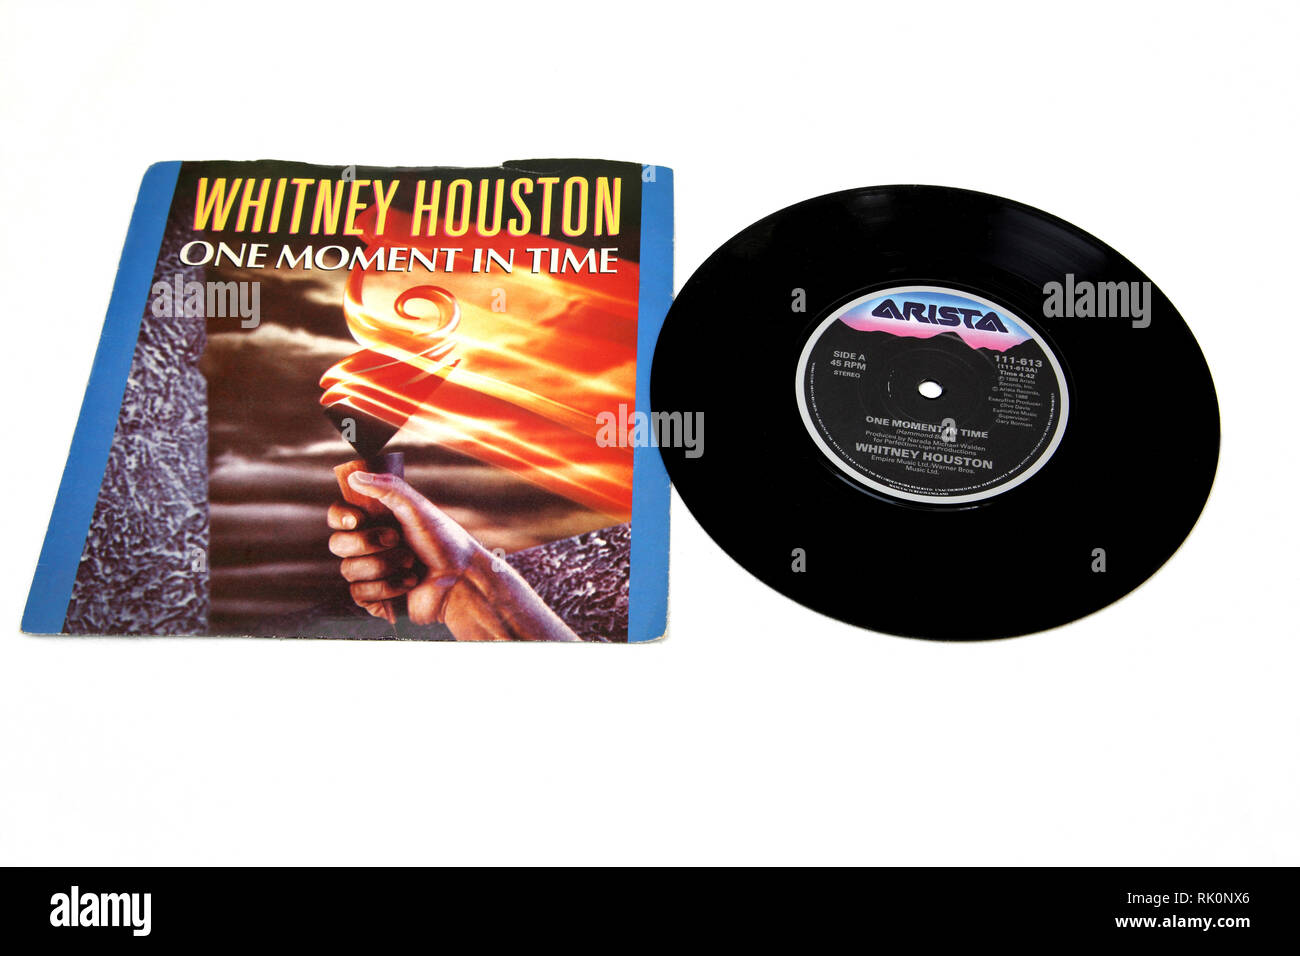 Whitney Houston One Moment in Time Single Record - Stock Image